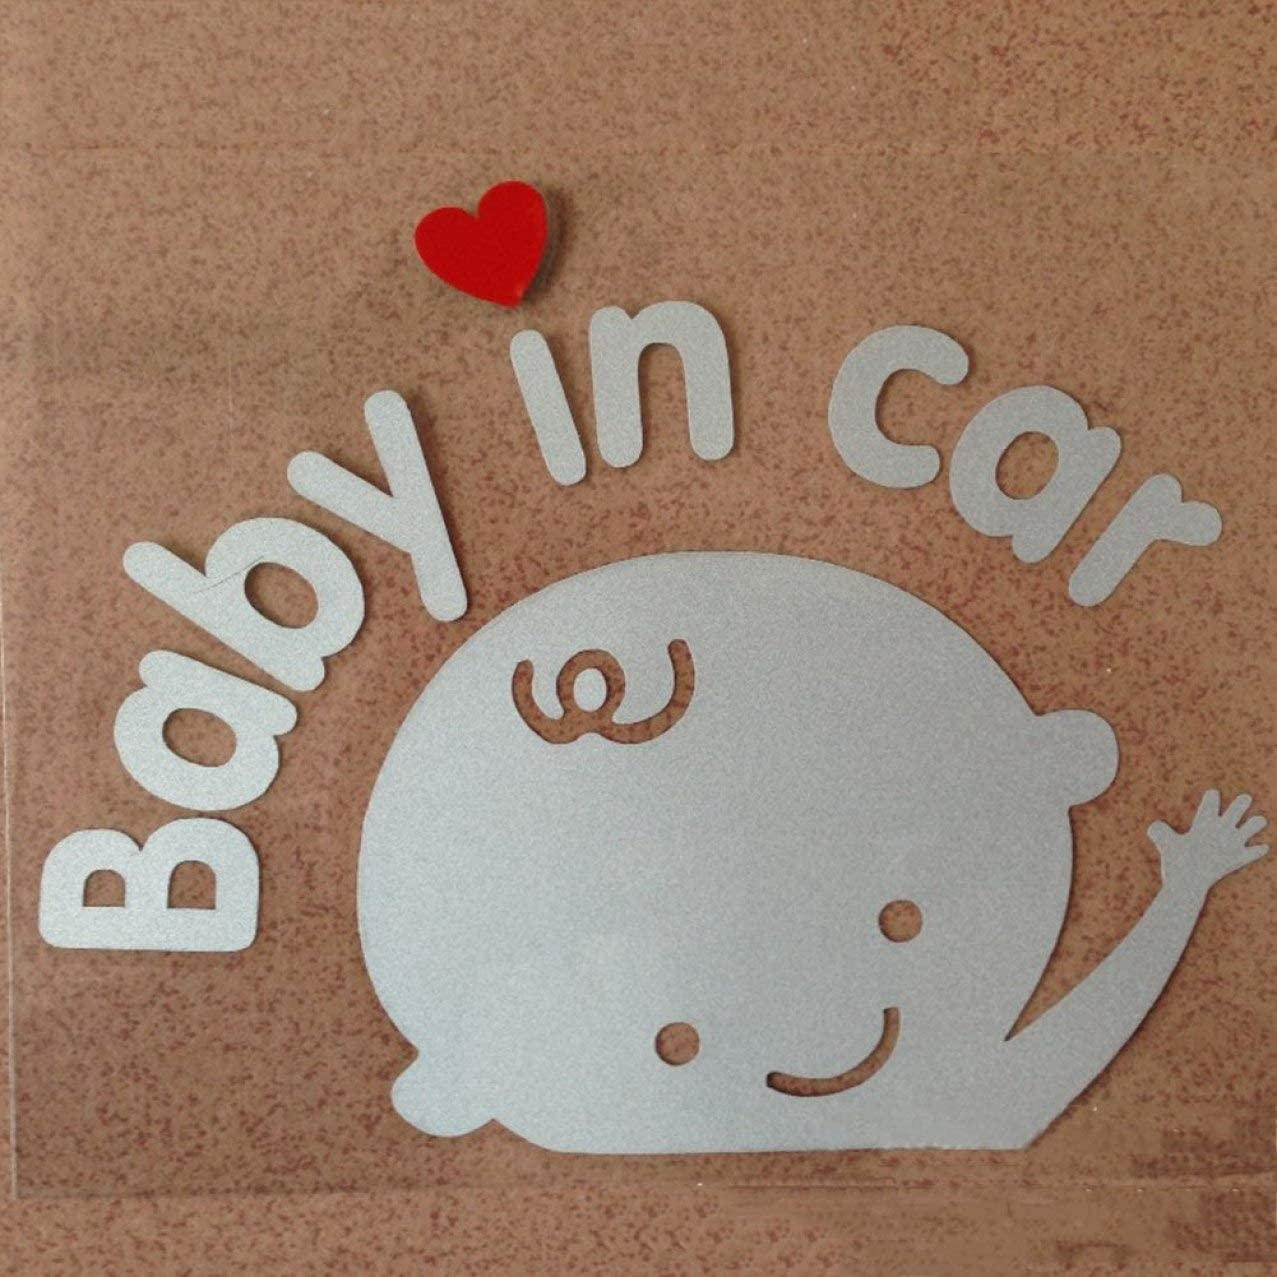 jlfhyg Beneficial Baby in Car Waving Baby on Board Safety Sign Cute Car Decal//Vinyl Sticker None Picture Color